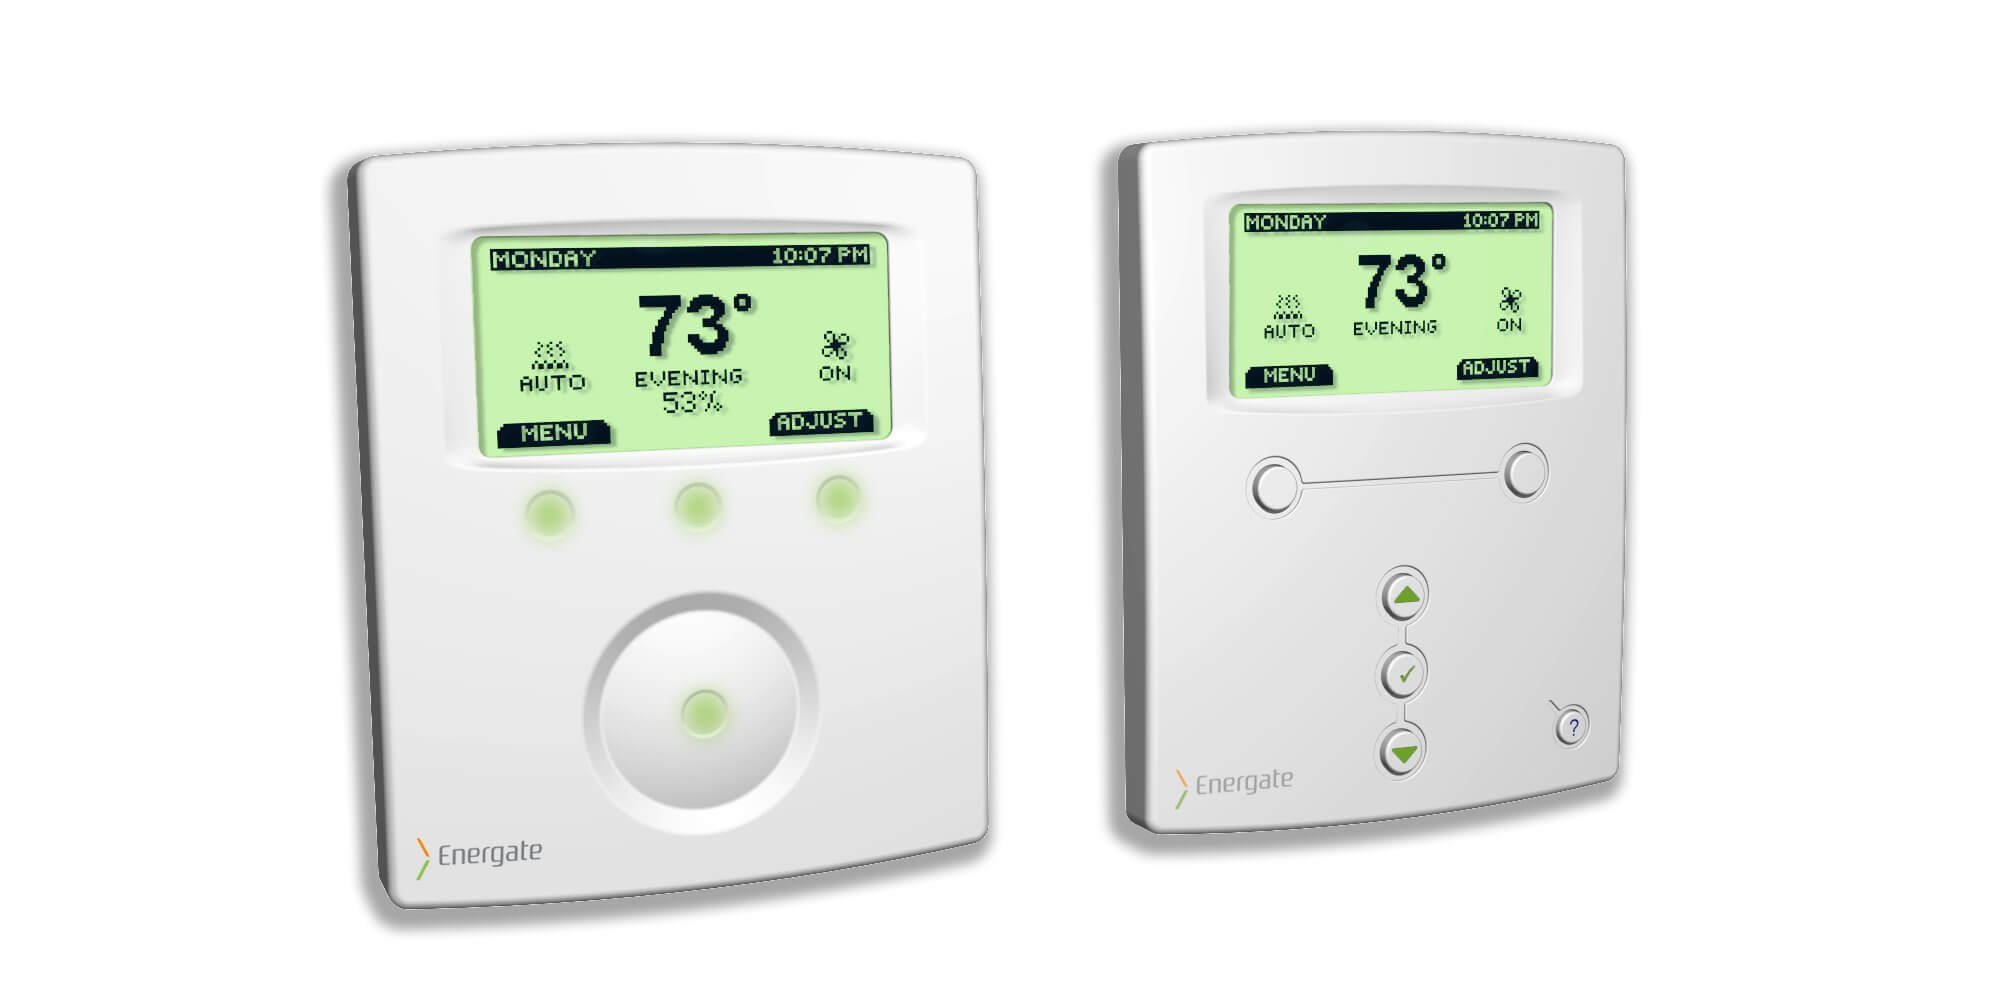 2010 Green Design Contest Winner: Energate Thermostat